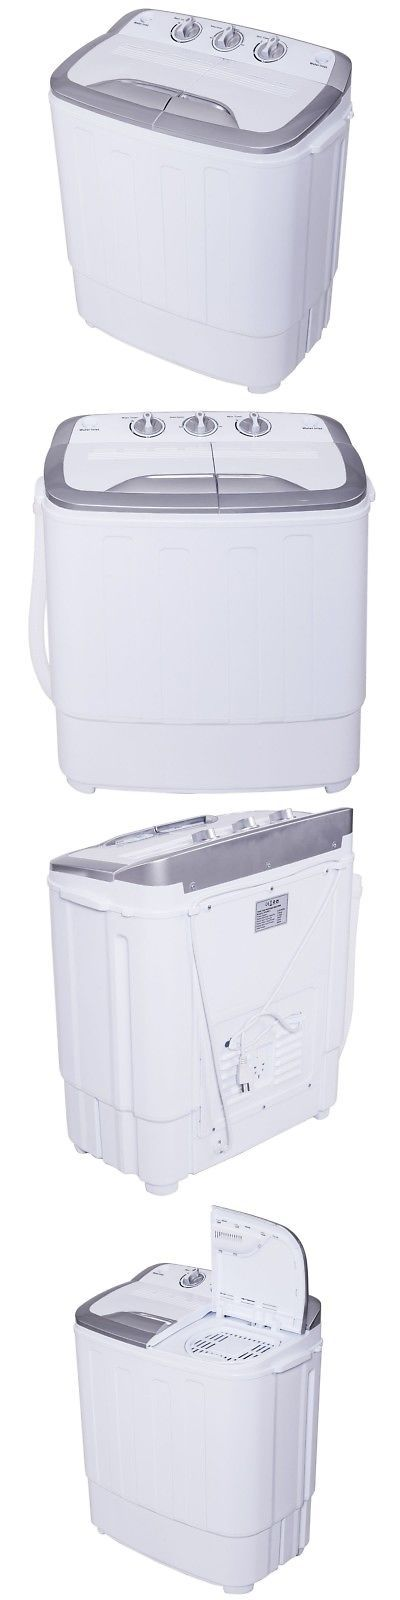 Washing Machines 71256: Portable Compact Mini Twin Tub Washing Machine Washer Spin Dryer Grayandwhite 8Lbs -> BUY IT NOW ONLY: $114.99 on eBay!